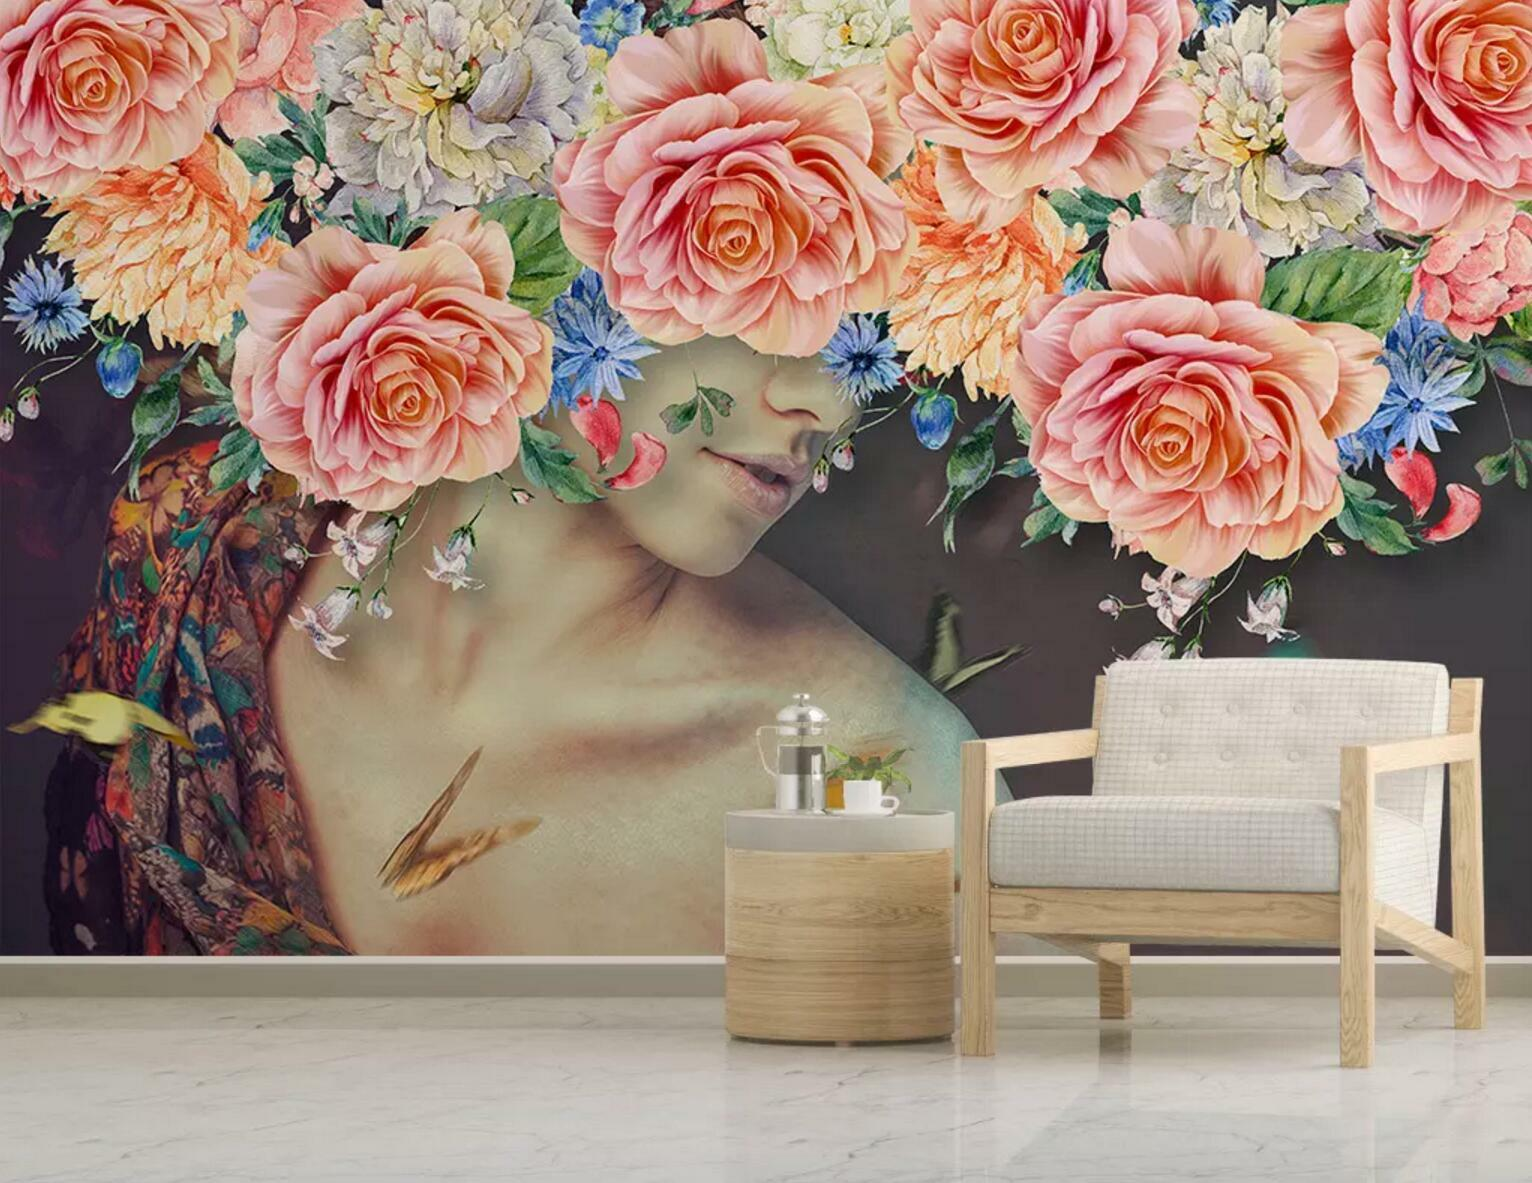 3D Face Flower ROT 82 Wall Paper Exclusive MXY Wallpaper Mural Decal Indoor Wall